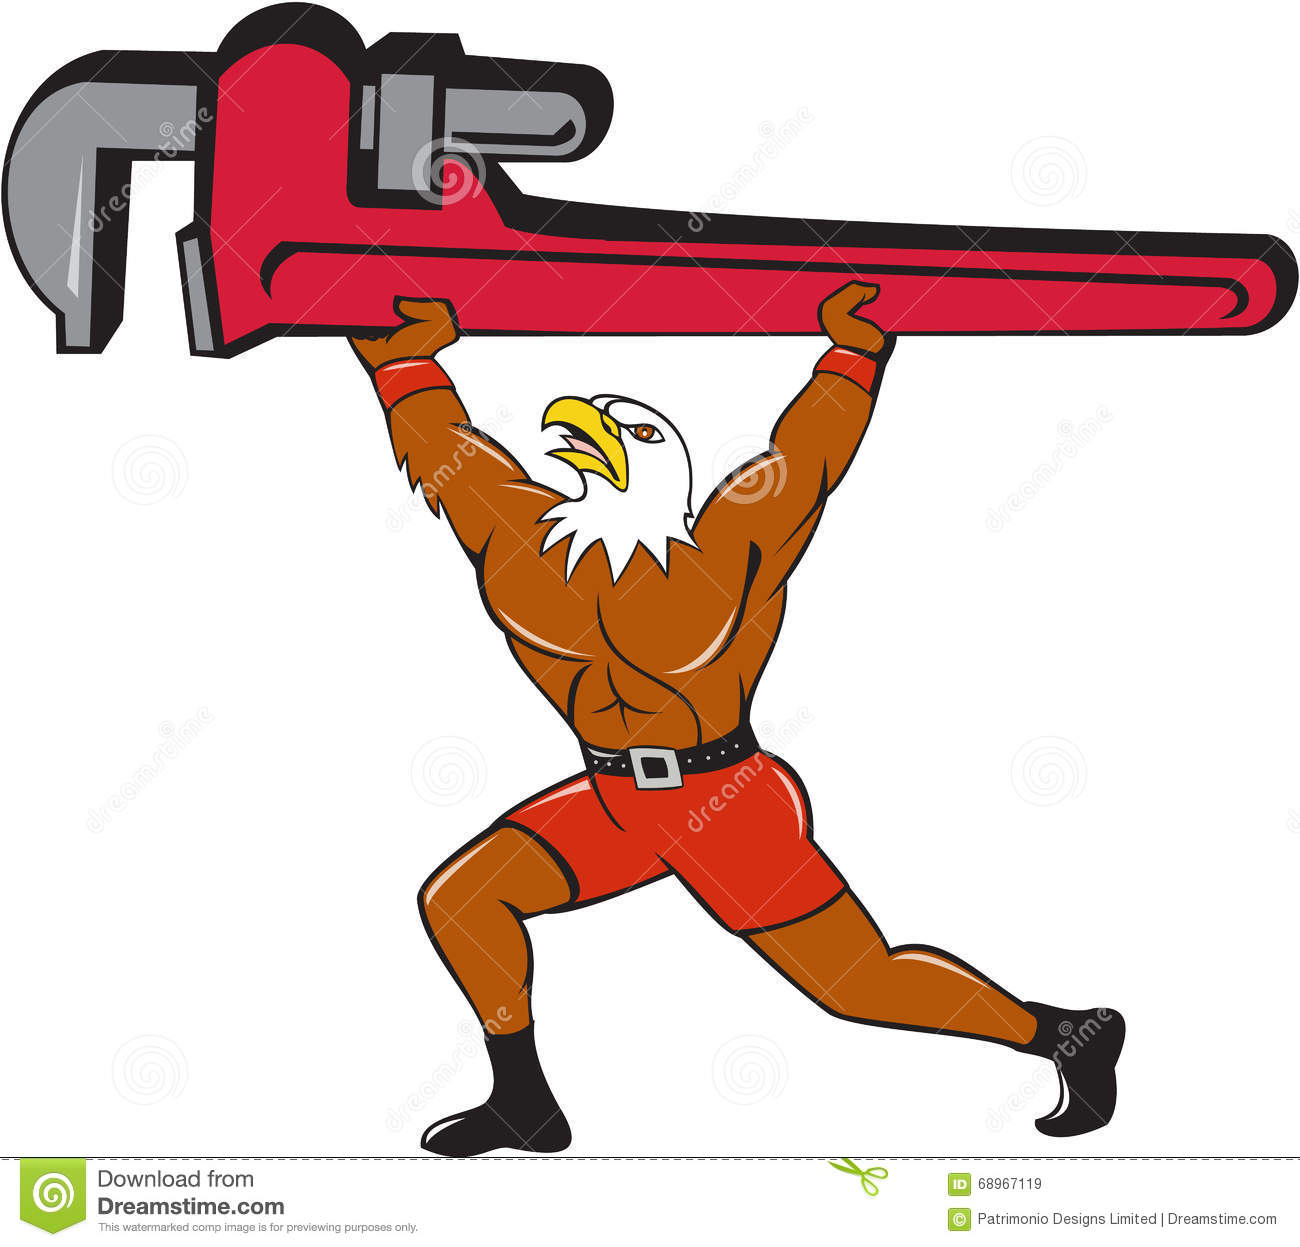 bald-eagle-plumber-monkey-wrench-isolated-cartoon-illustration-american-lifting-giant-adjustable-over-head-looking-up-to-68967119.jpg